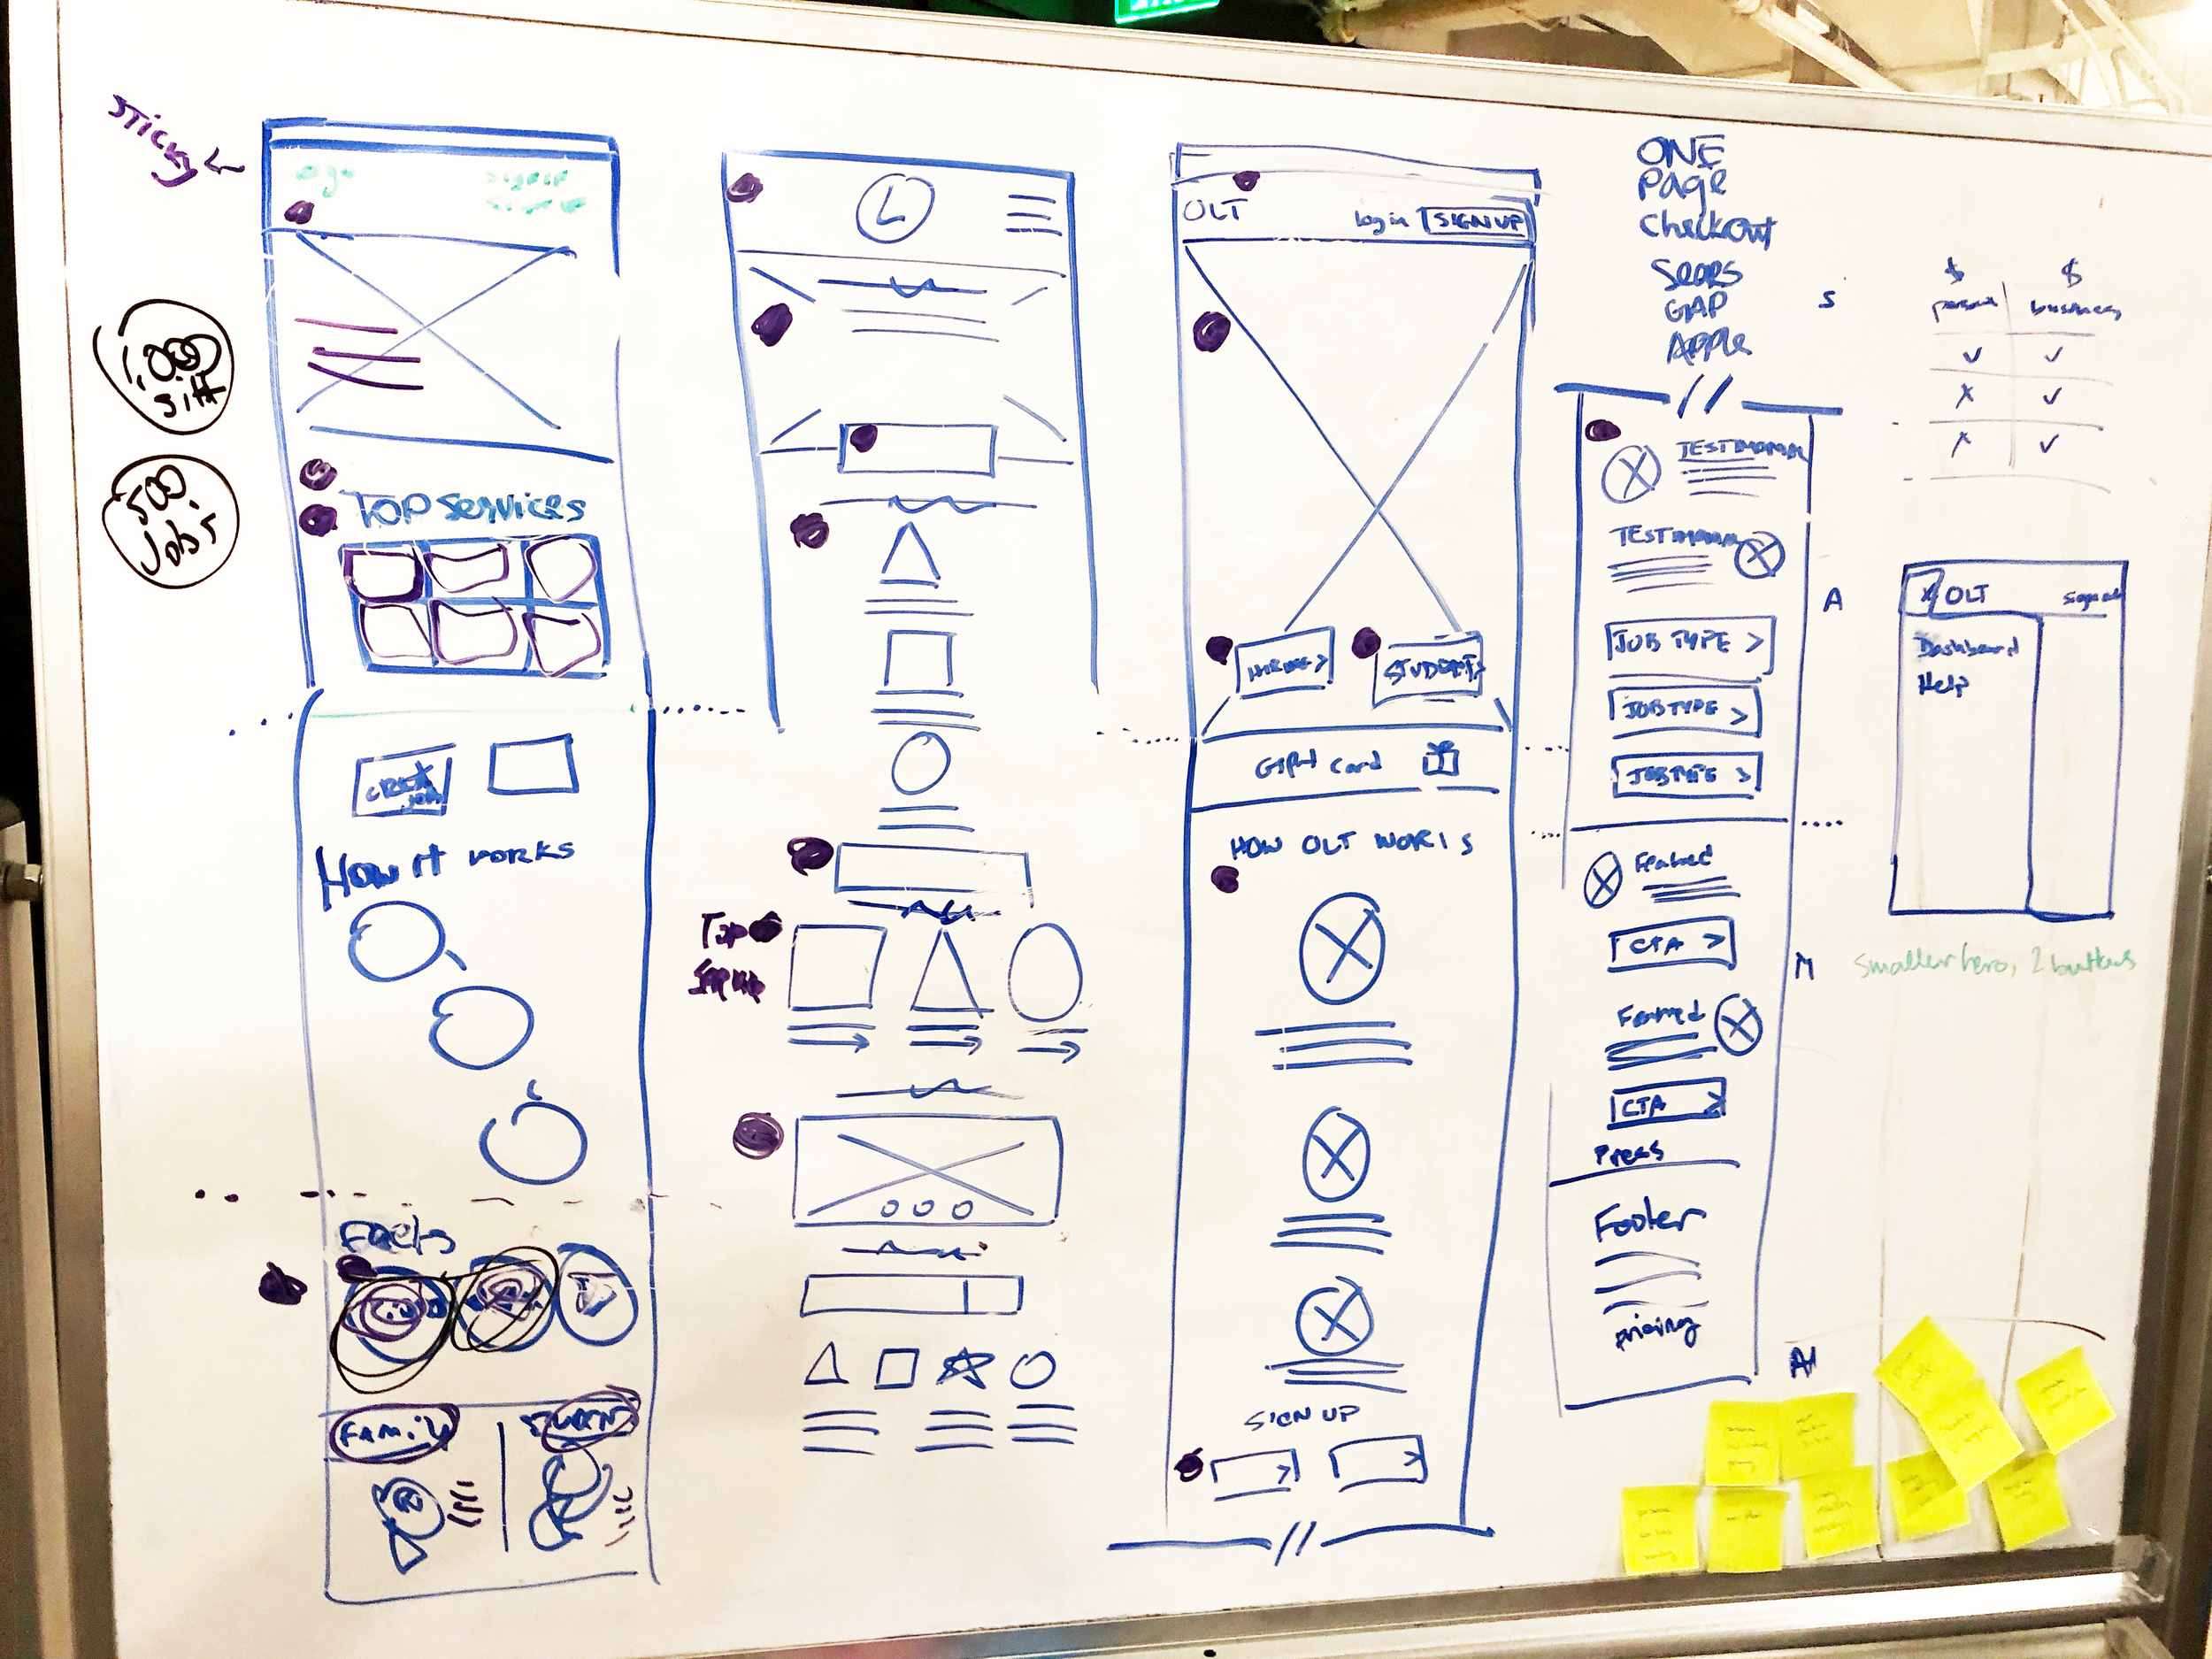 Preliminary homepage ideas on whiteboard